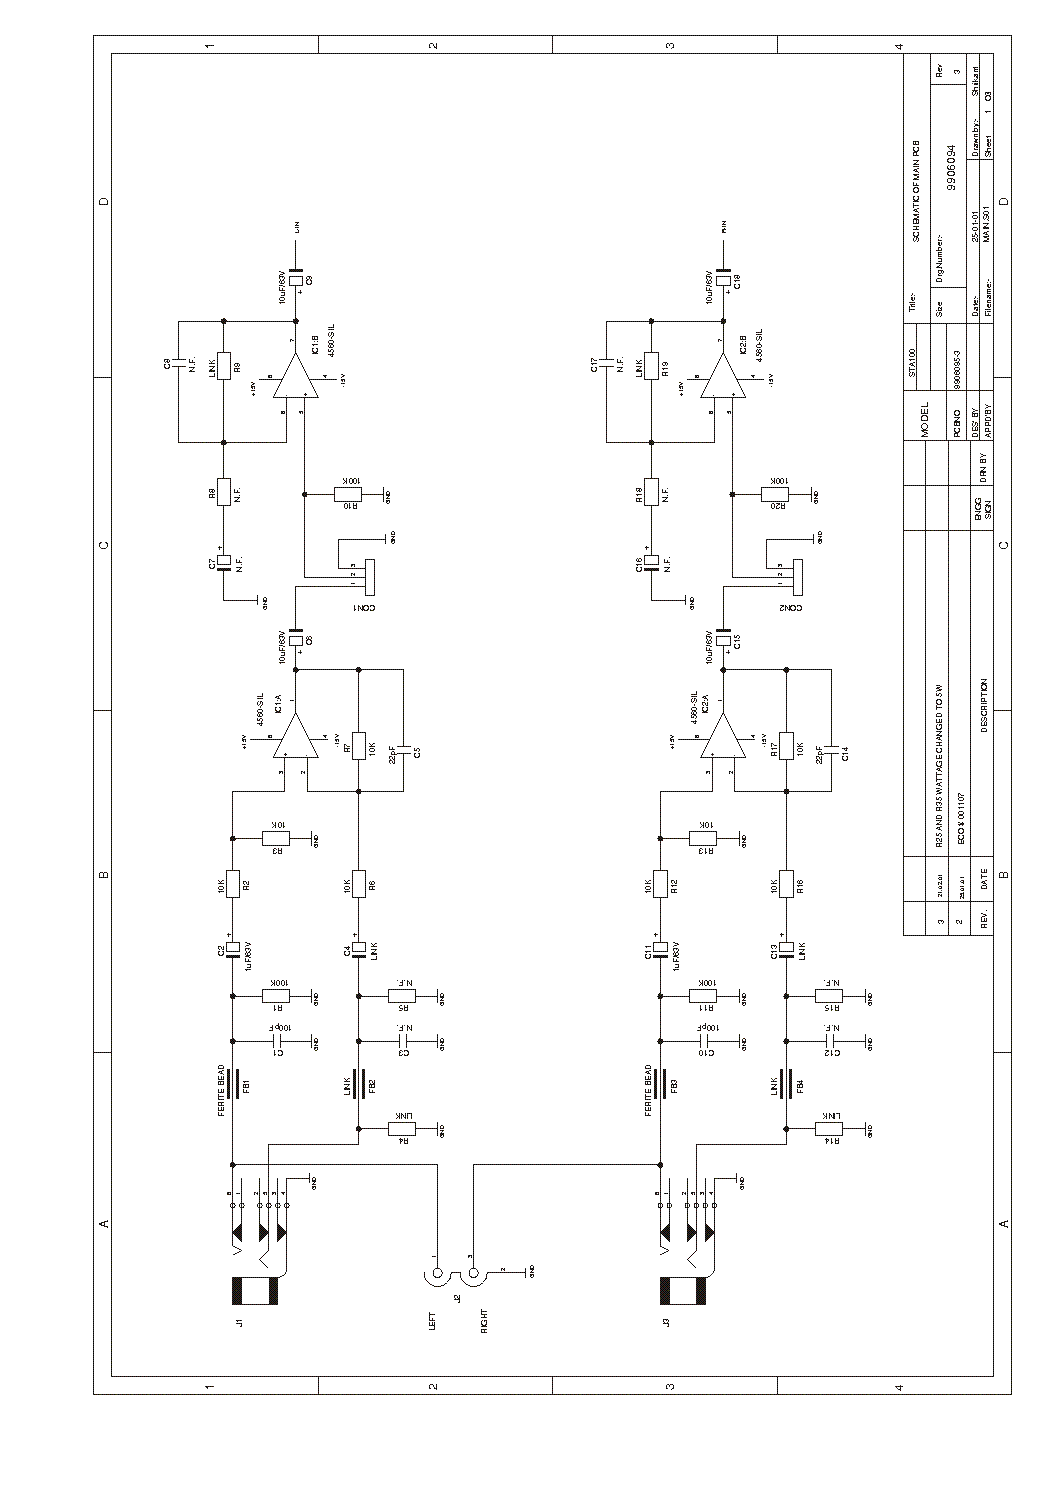 320 amp electrical service diagram